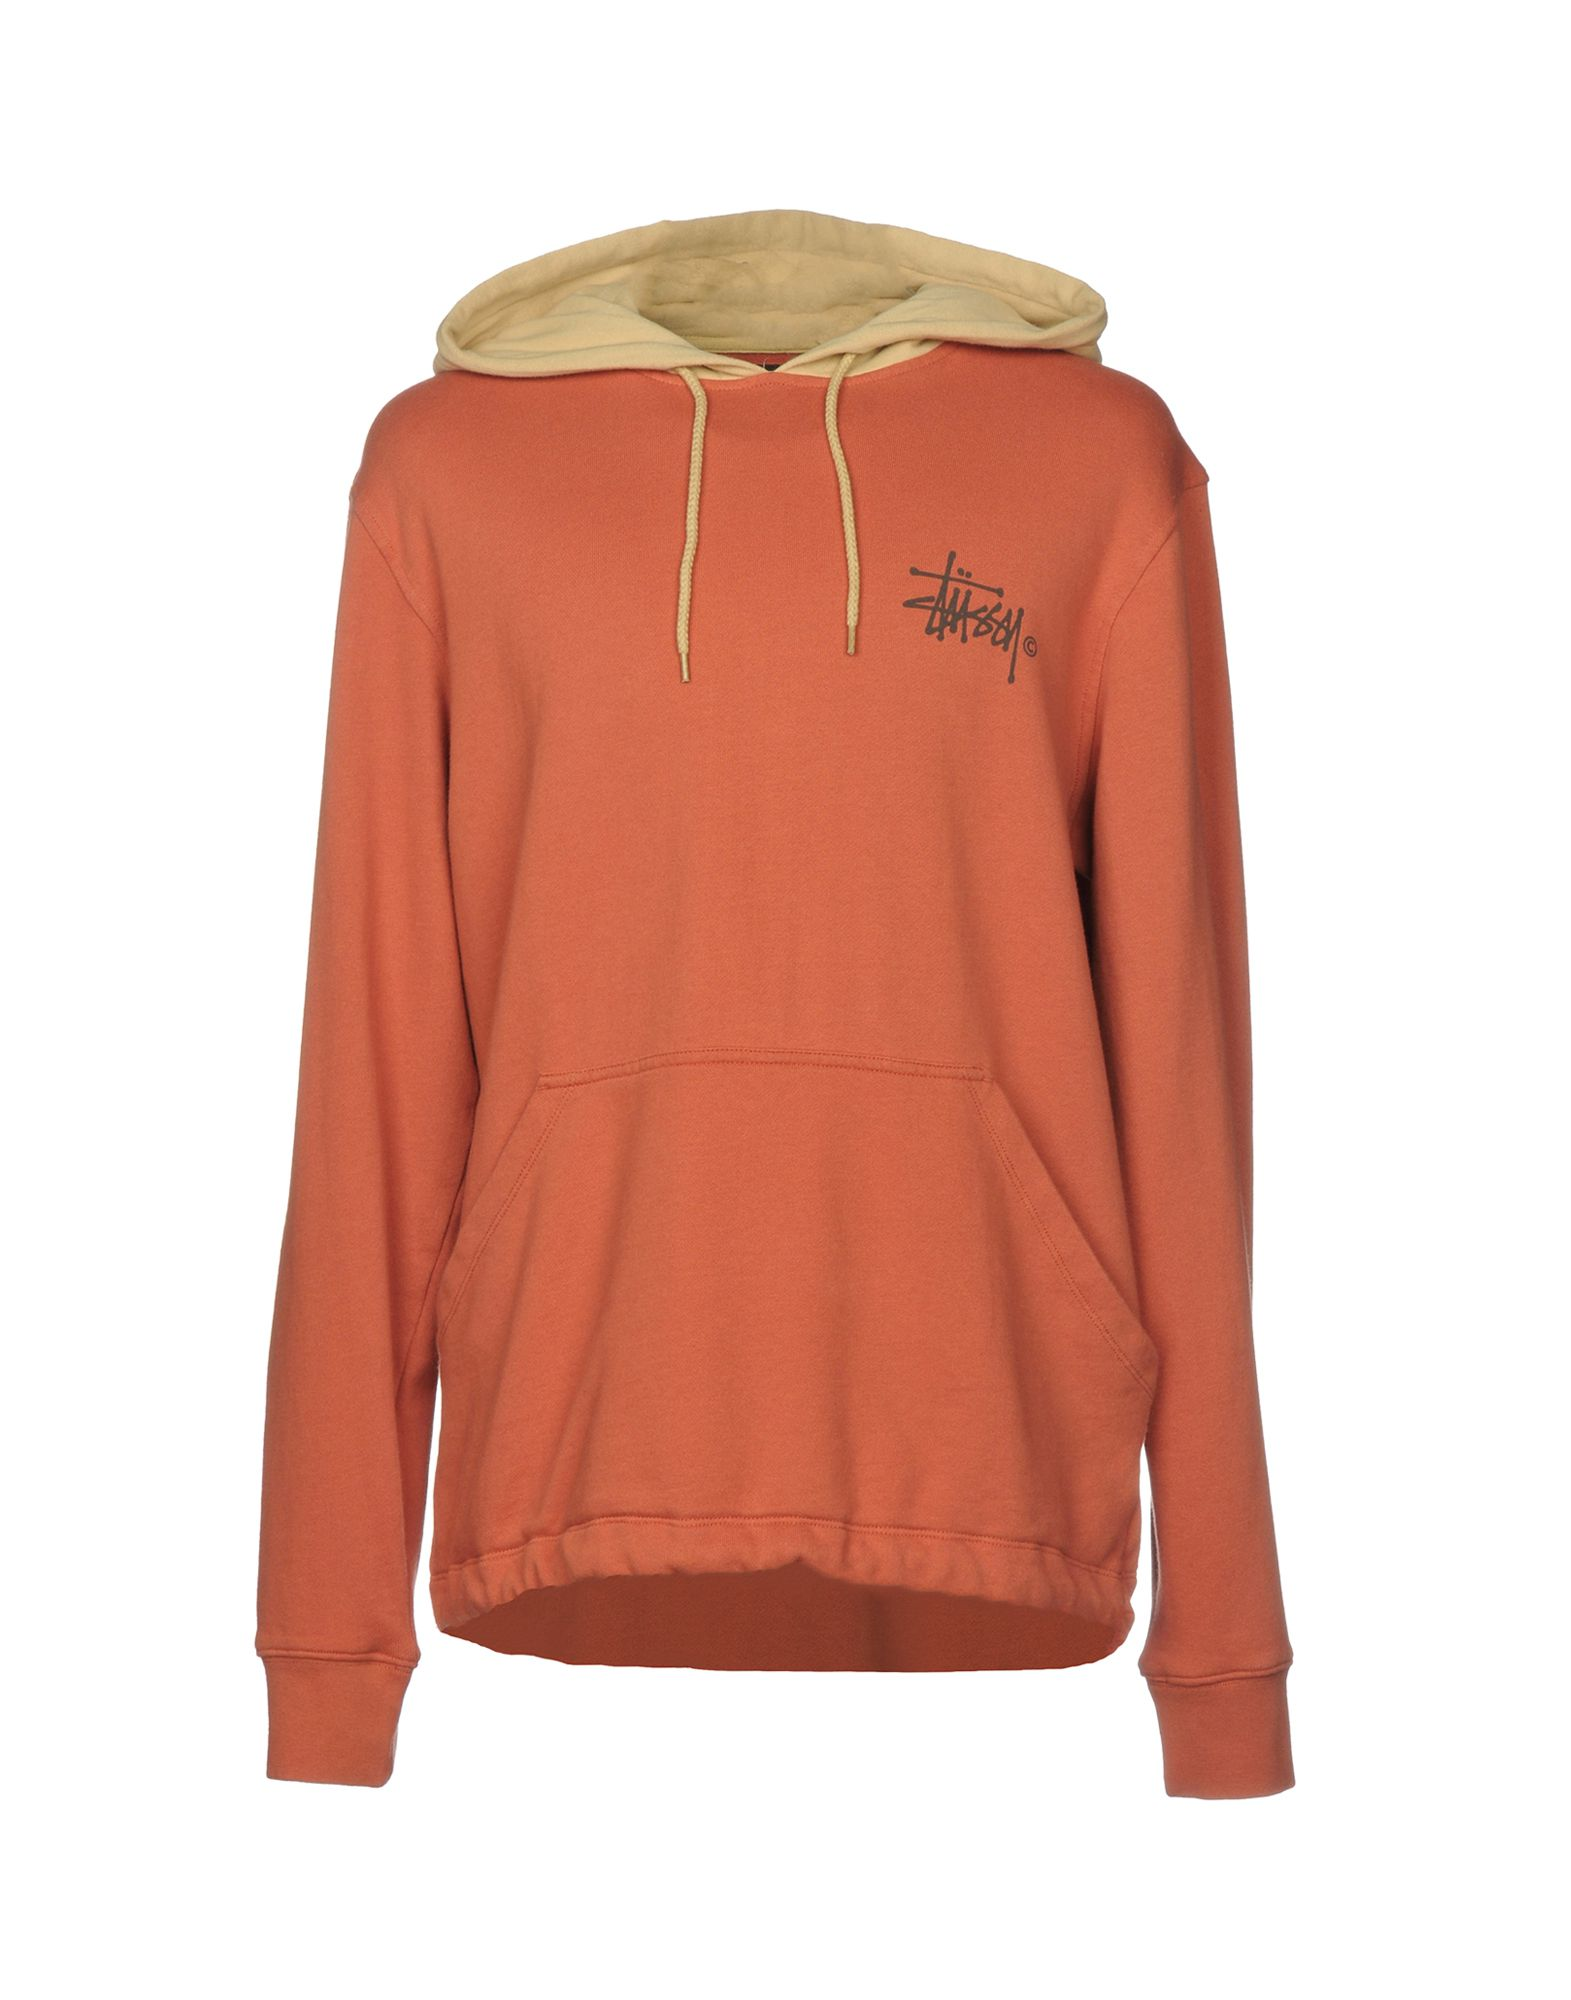 STUSSY Толстовка толстовка stussy 4134943 world tour zip hood